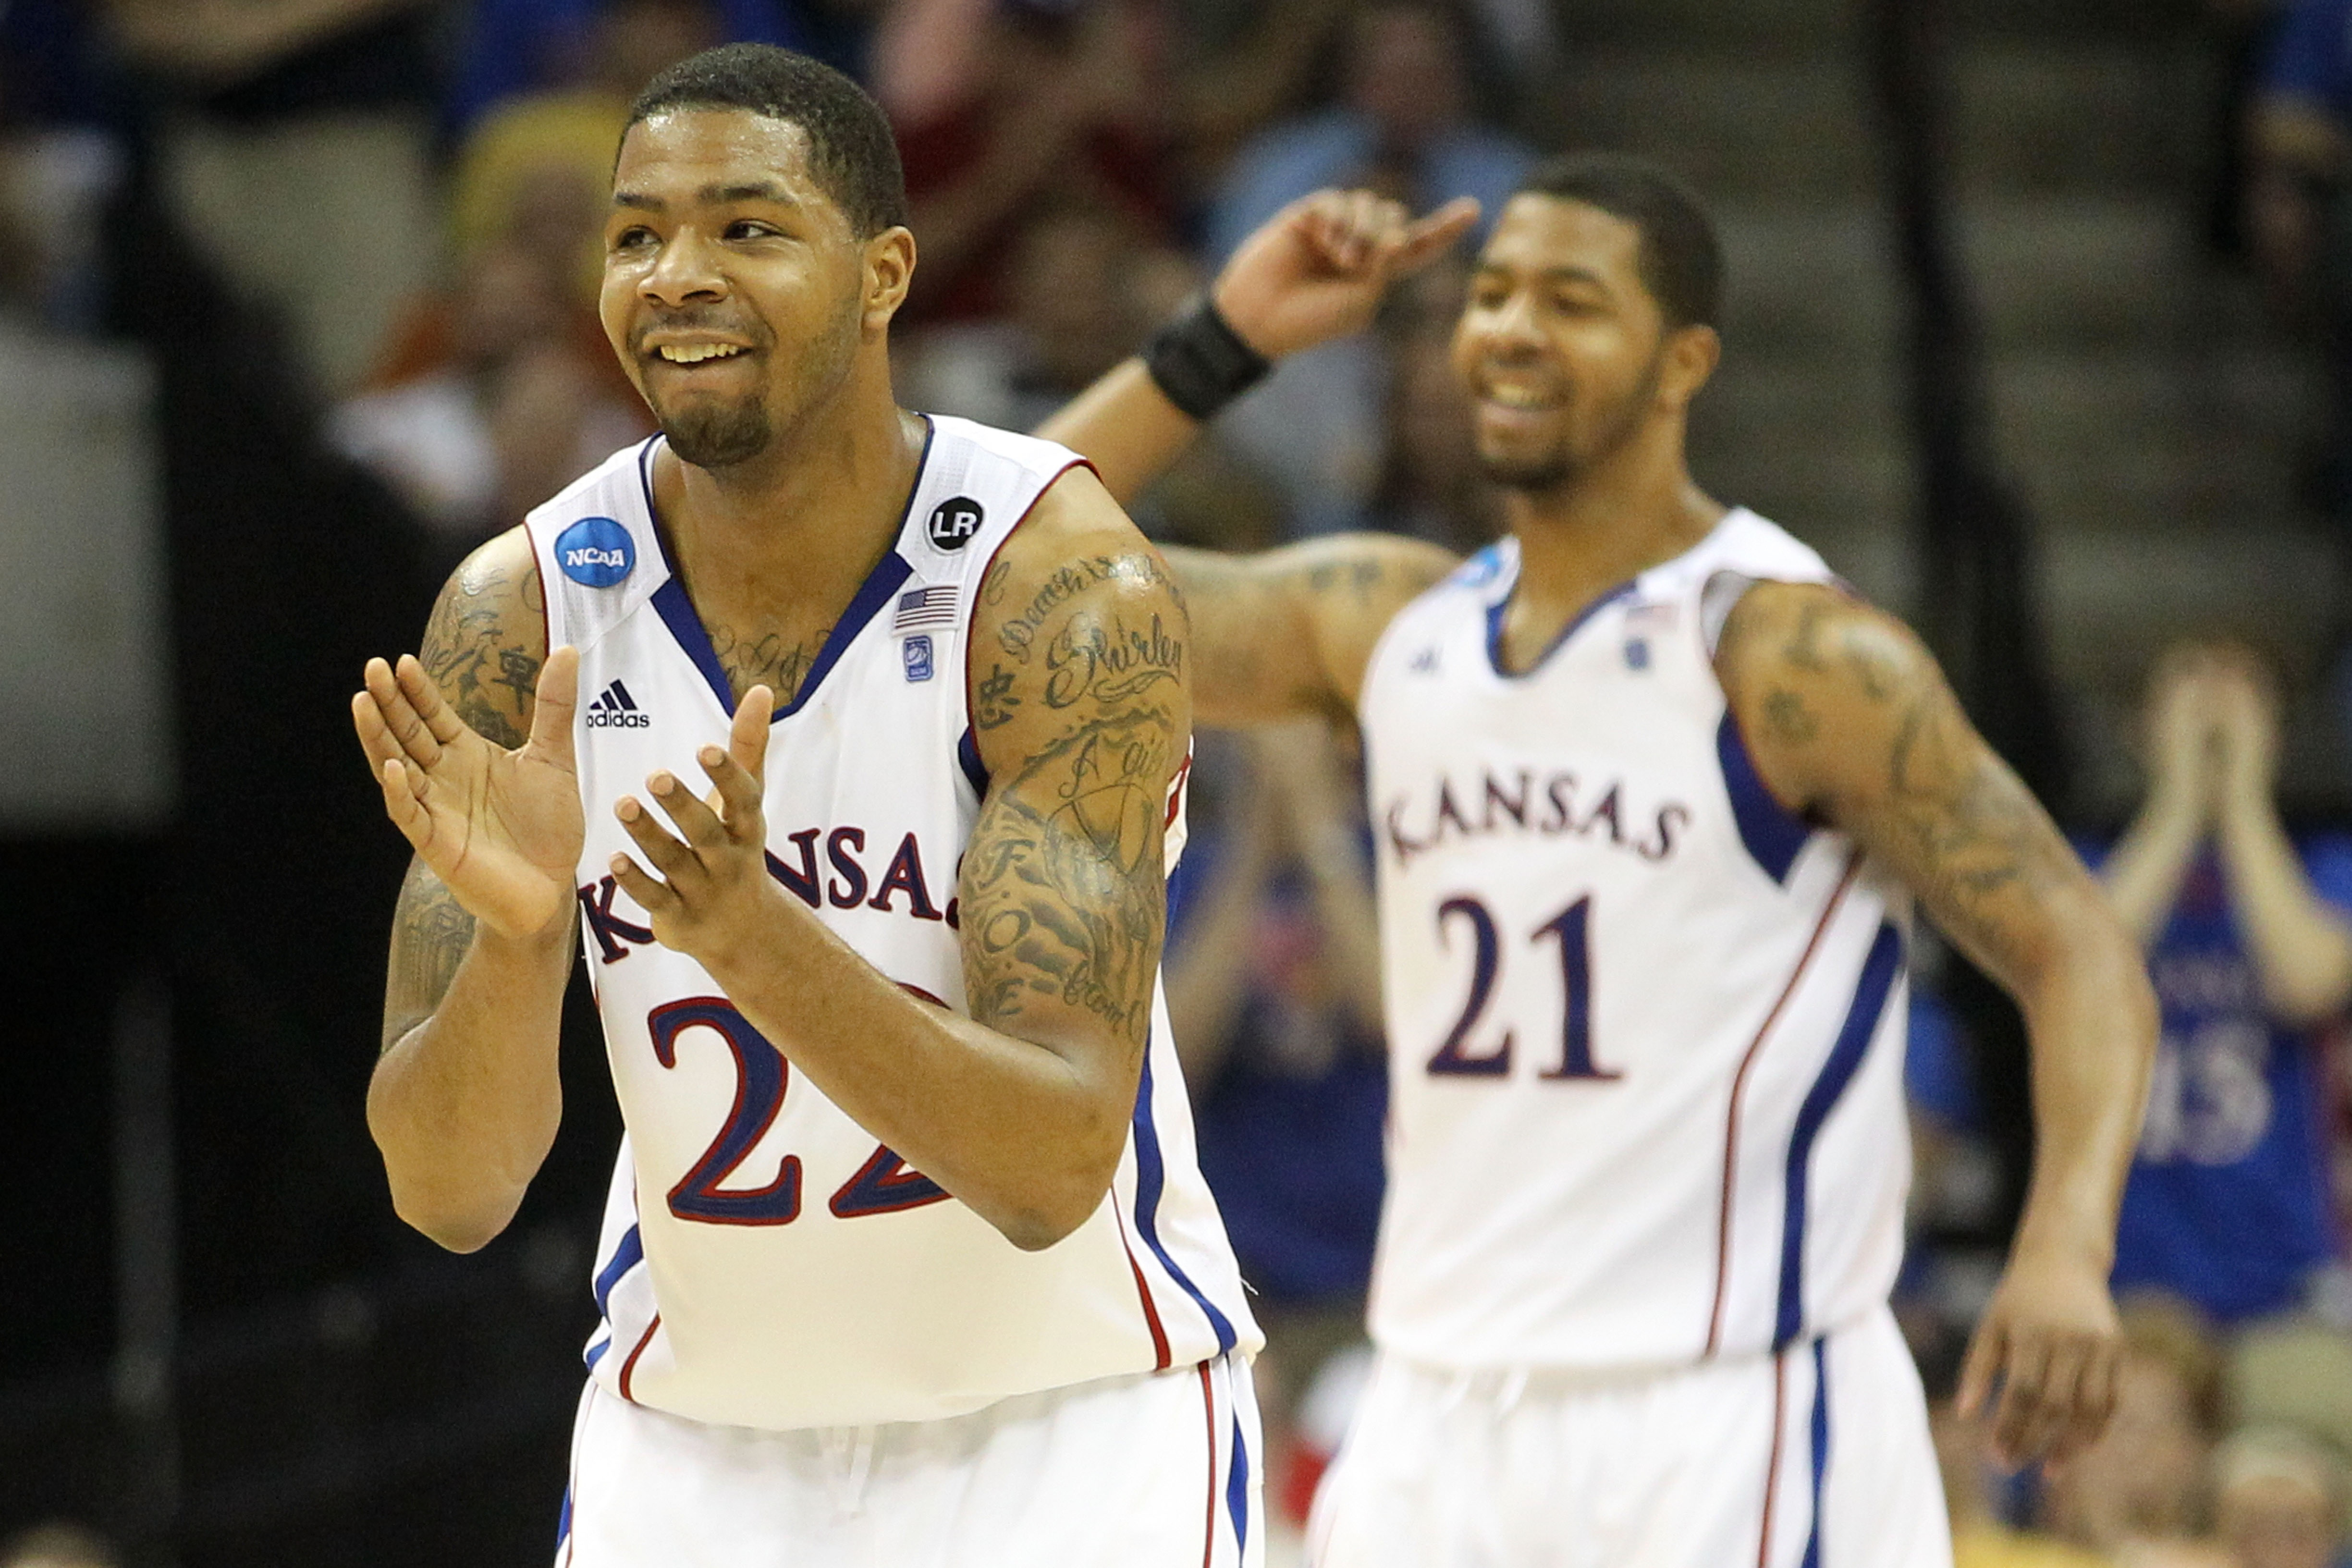 TULSA, OK - MARCH 20:  Marcus Morris #22 and Markieff Morris #21 of the Kansas Jayhawks celebrate after a play against the Illinois Fighting Illini during the third round of the 2011 NCAA men's basketball tournament at BOK Center on March 20, 2011 in Tuls